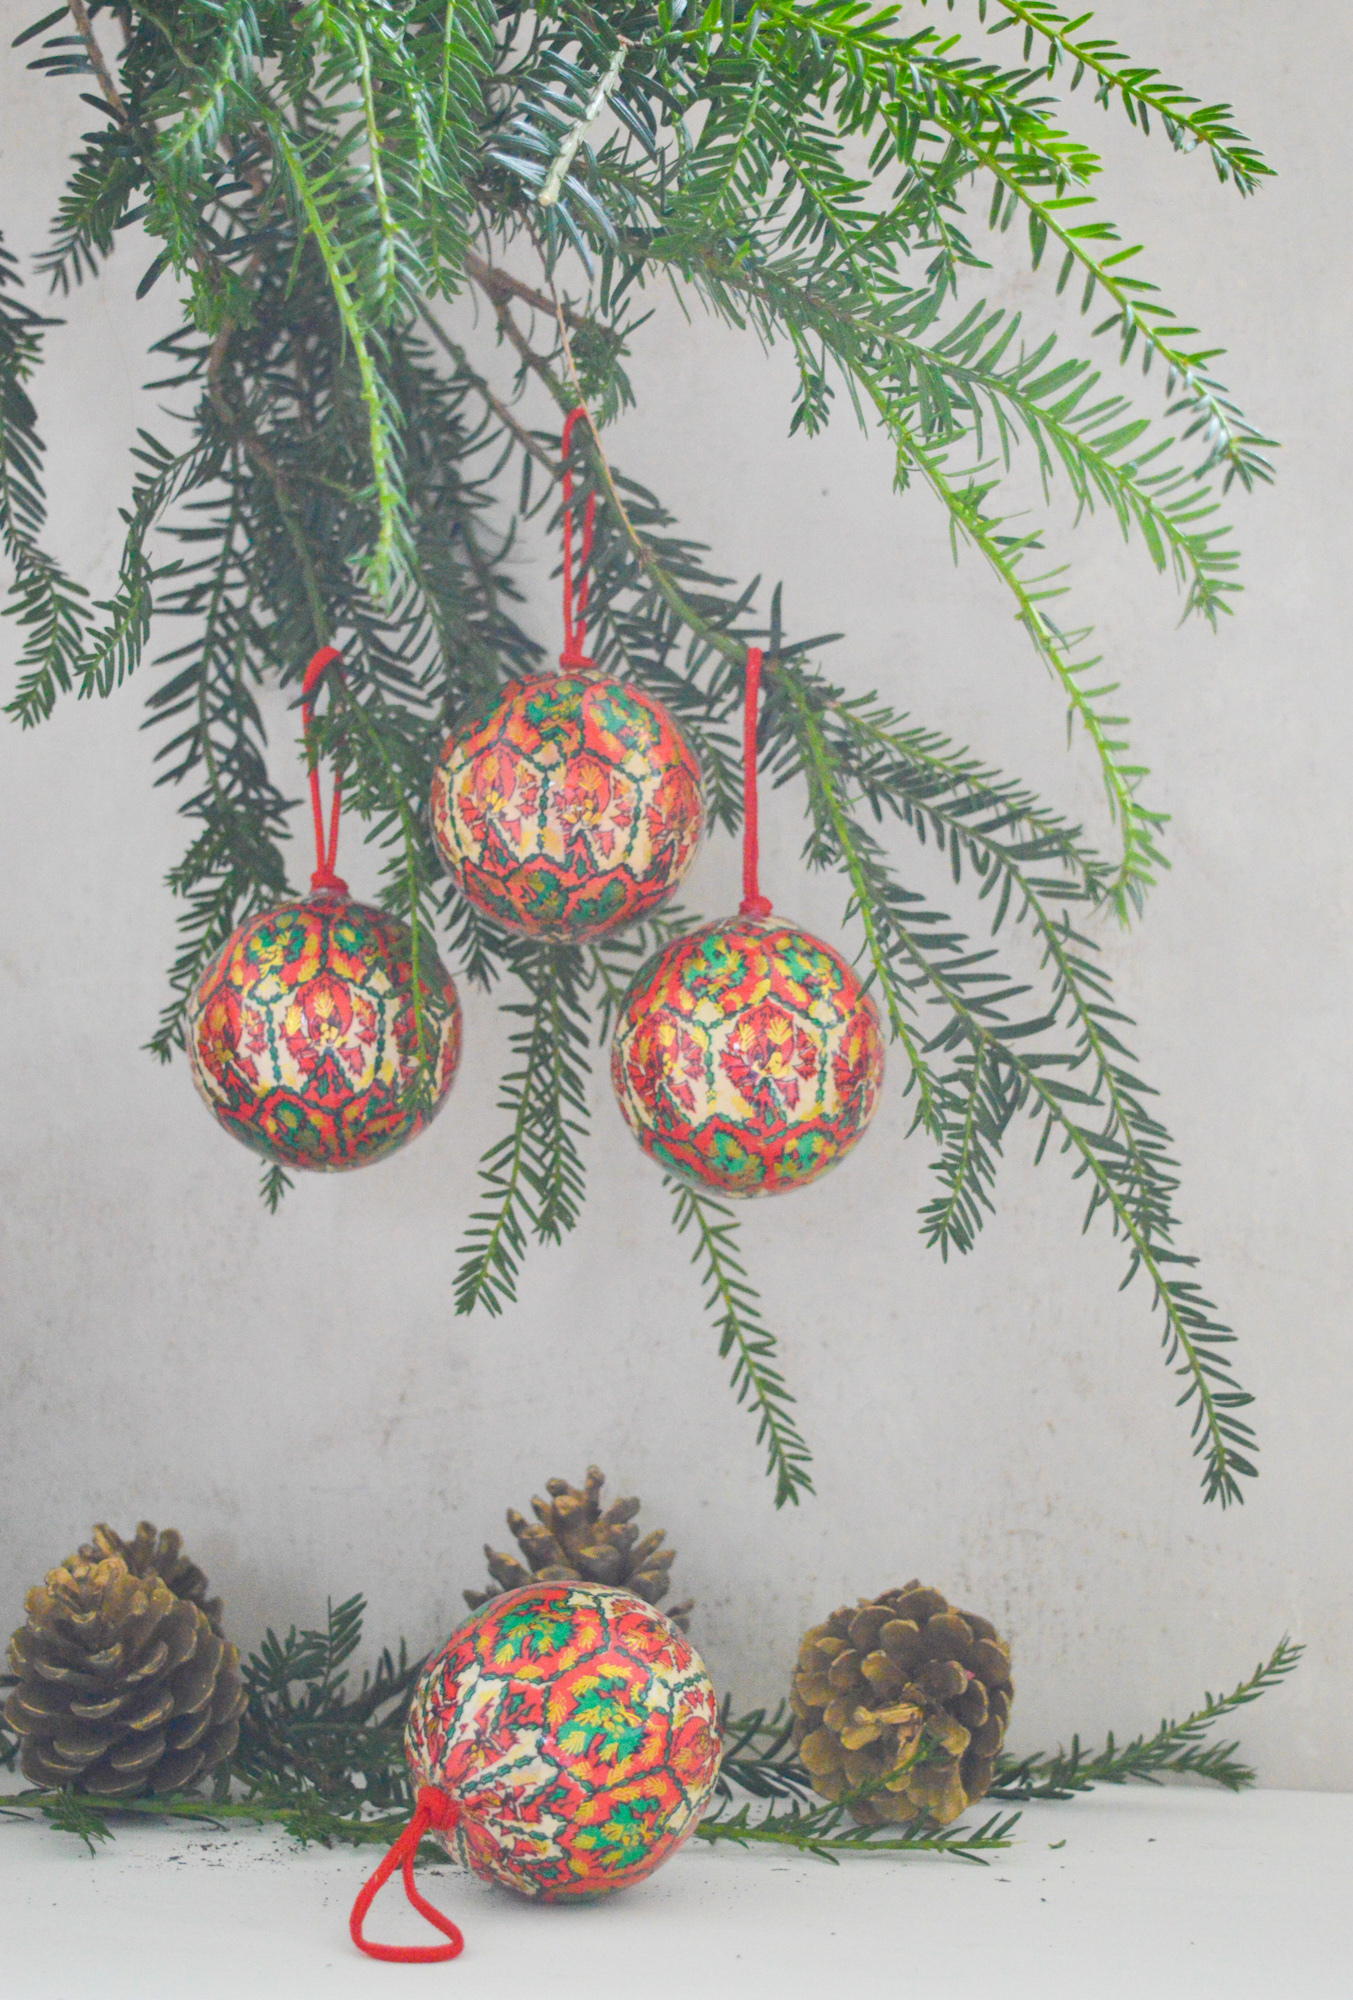 Vintage Set Of 3 Christmas Tree Ornaments Bauble Ornaments Red Green Gold White Ready To Hang 3 Colourful Vintage Christmas Balls Vinterior